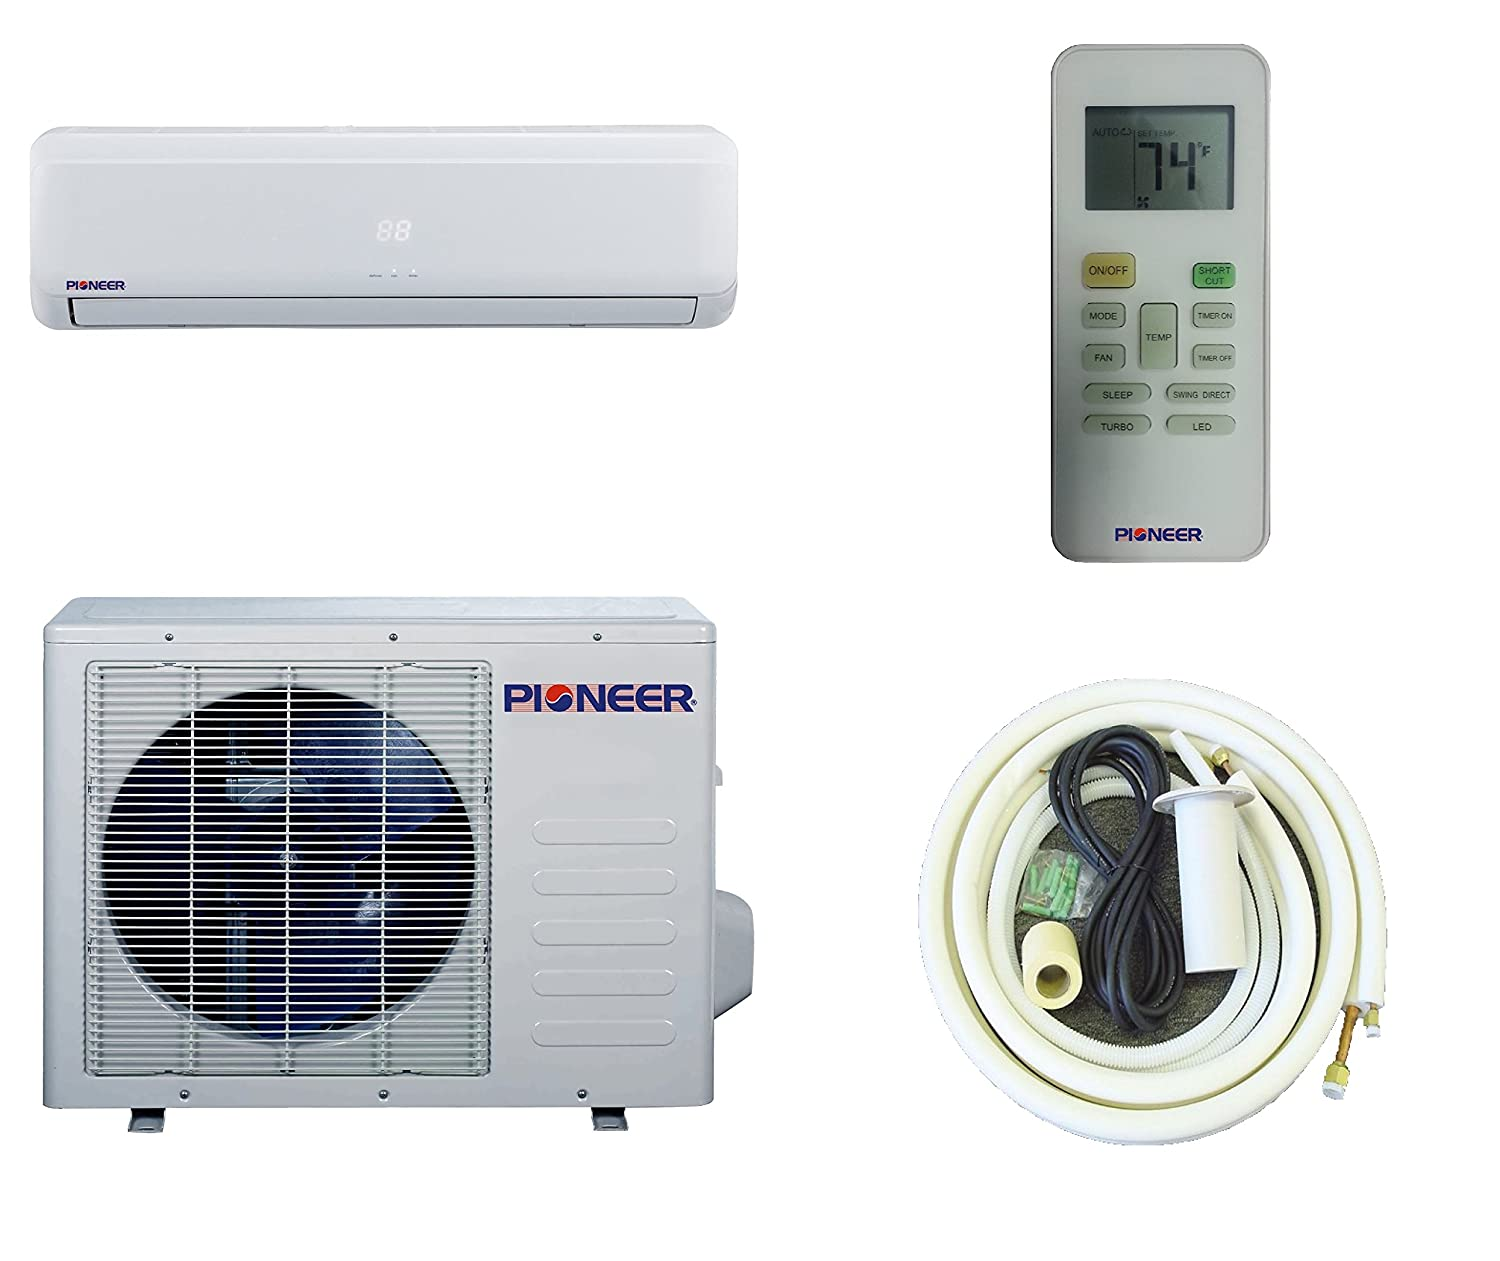 #716F45 Pioneer Ductless Wall Mount Mini Split INVERTER Air  2017 14552 Wall Mounted Ductless Air Conditioner photo with 1500x1261 px on helpvideos.info - Air Conditioners, Air Coolers and more